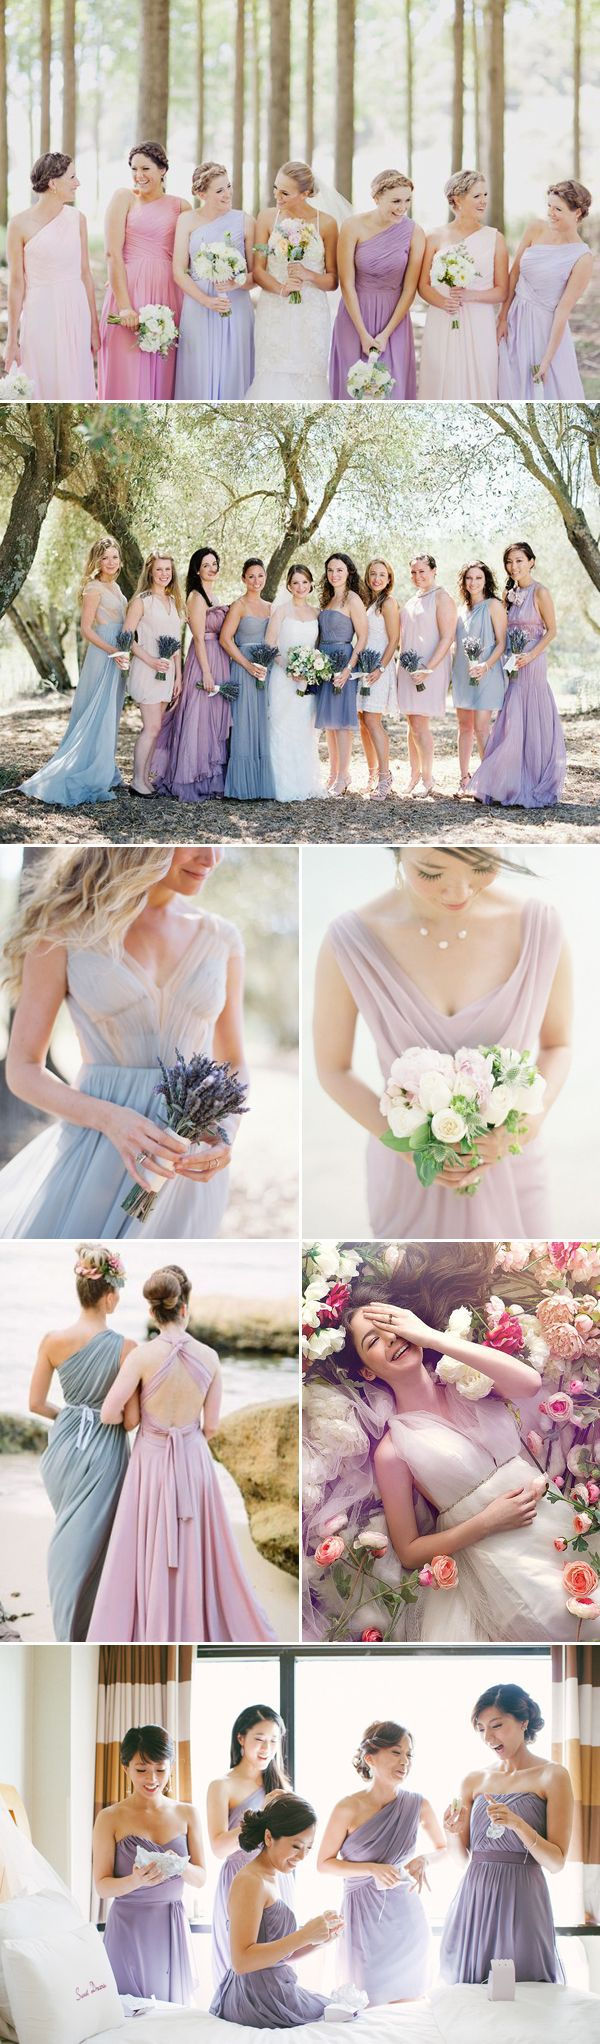 Top 8 Bridesmaid Dress Trends for Summer 2014 - Lavender